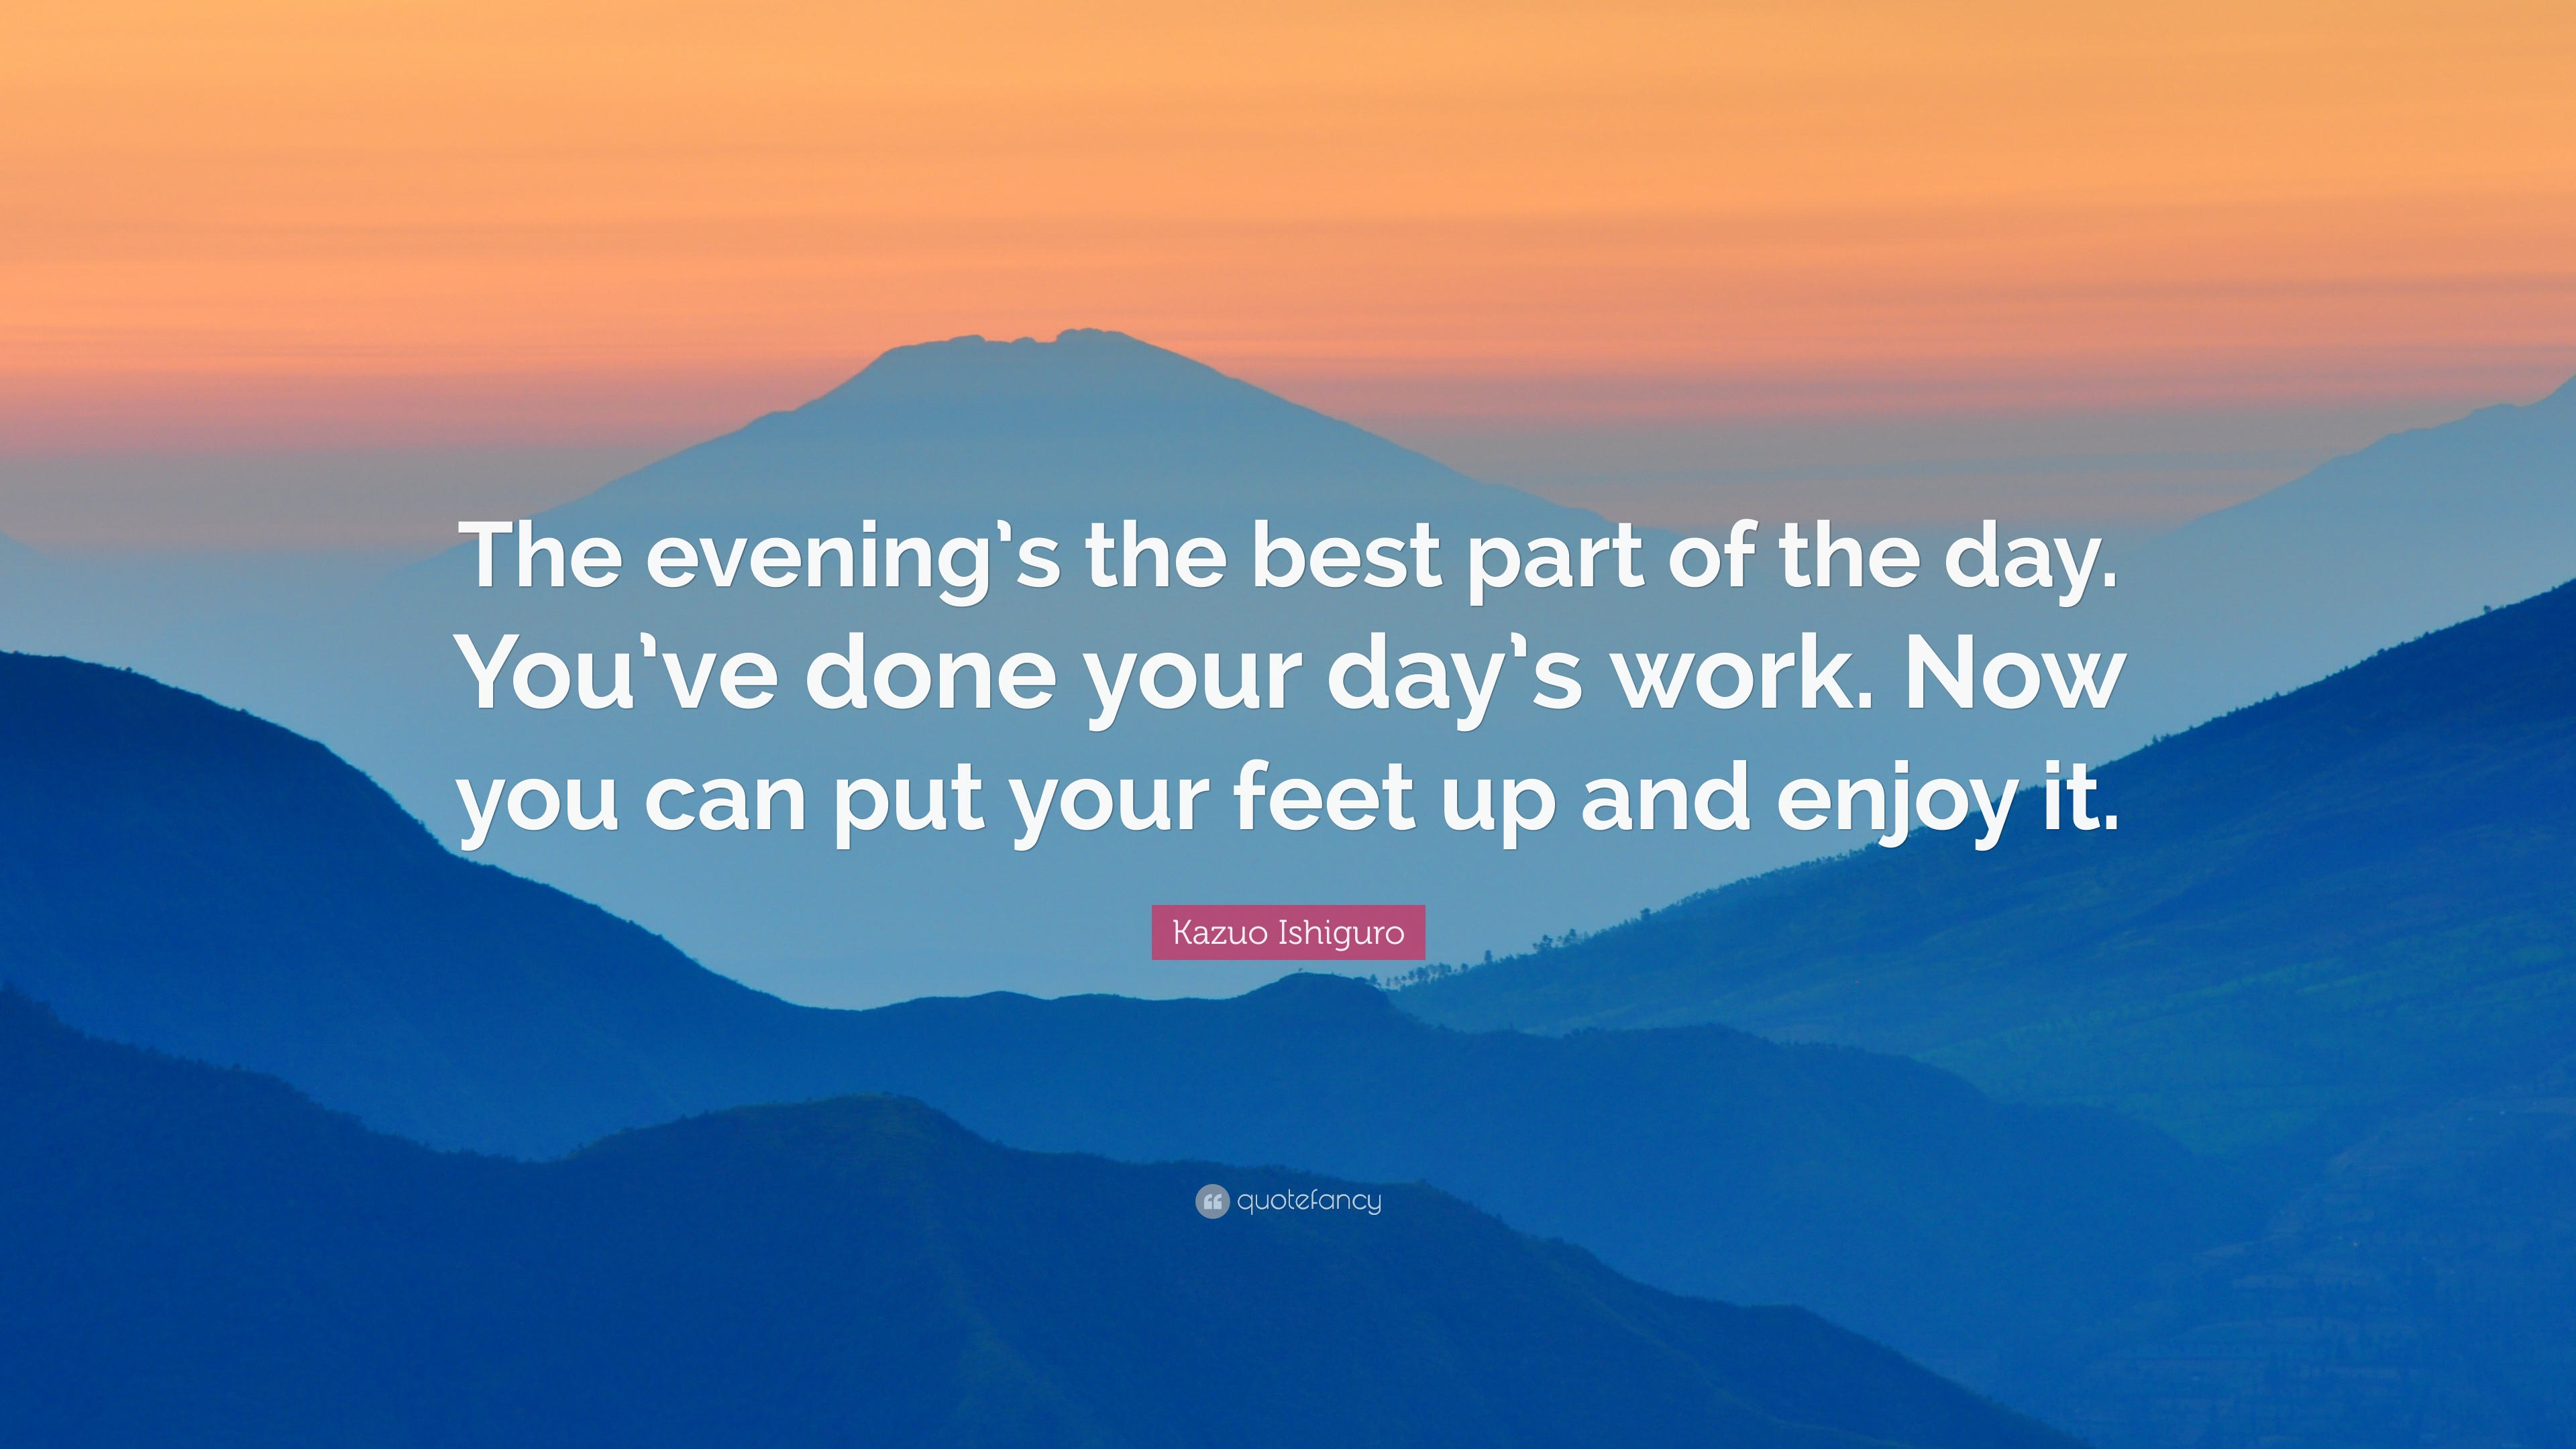 Kazuo Ishiguro Quote The Evening S The Best Part Of The Day You Ve Done Your Day S Work Now You Can Put Your Feet Up And Enjoy It 12 Wallpapers Quotefancy